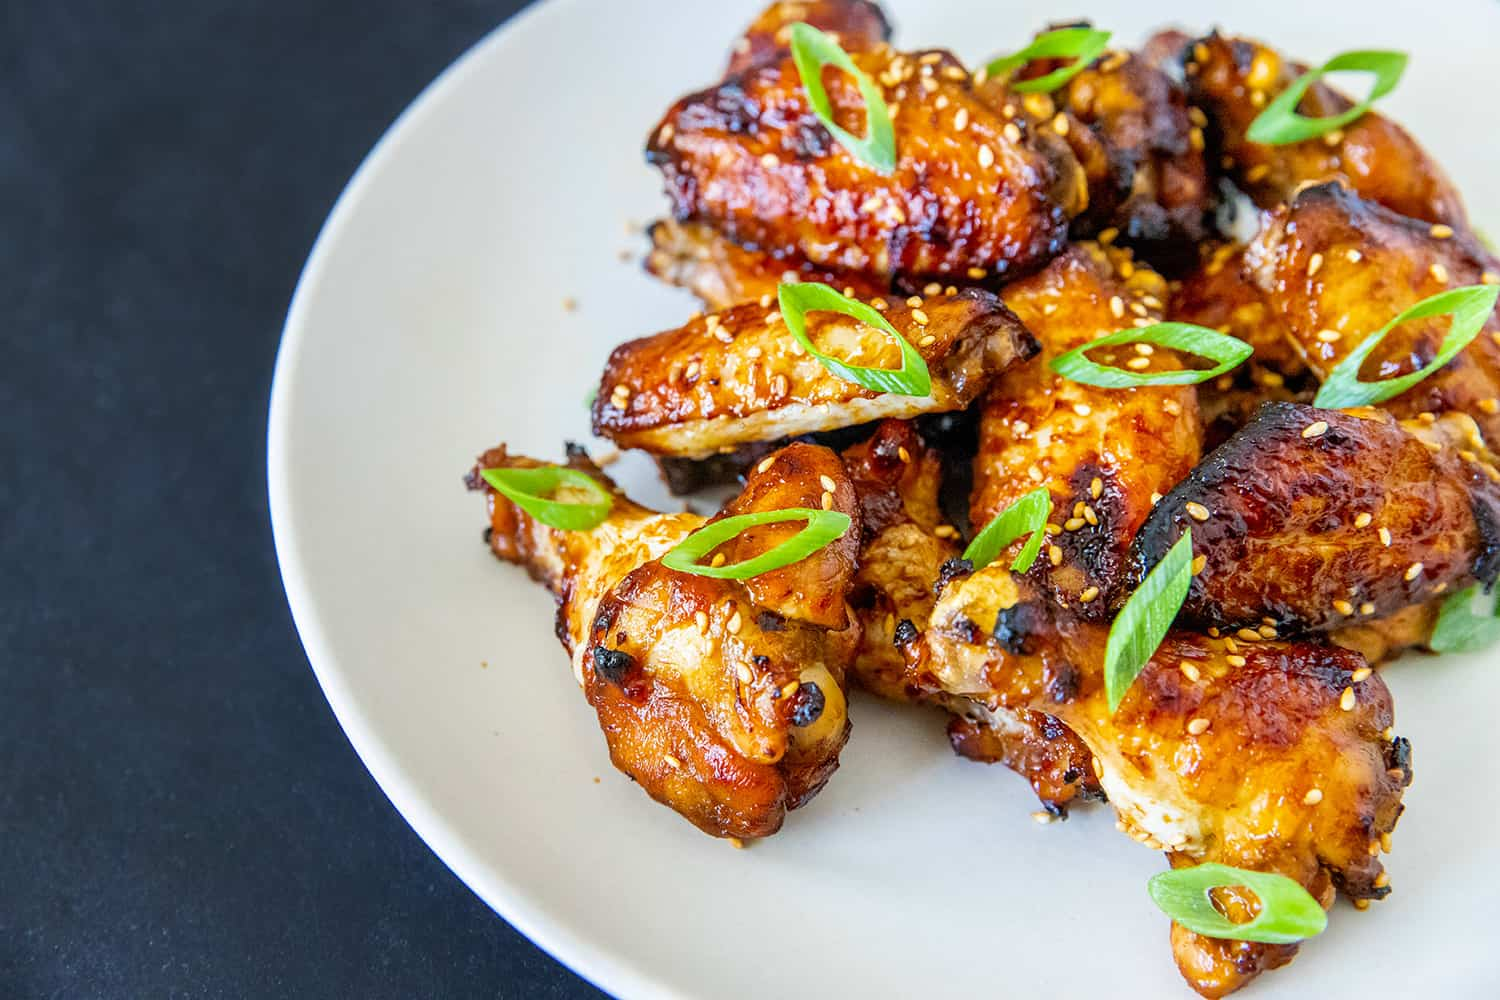 A platter of Whole30-friendly, gluten-free Chinese Chicken Wings